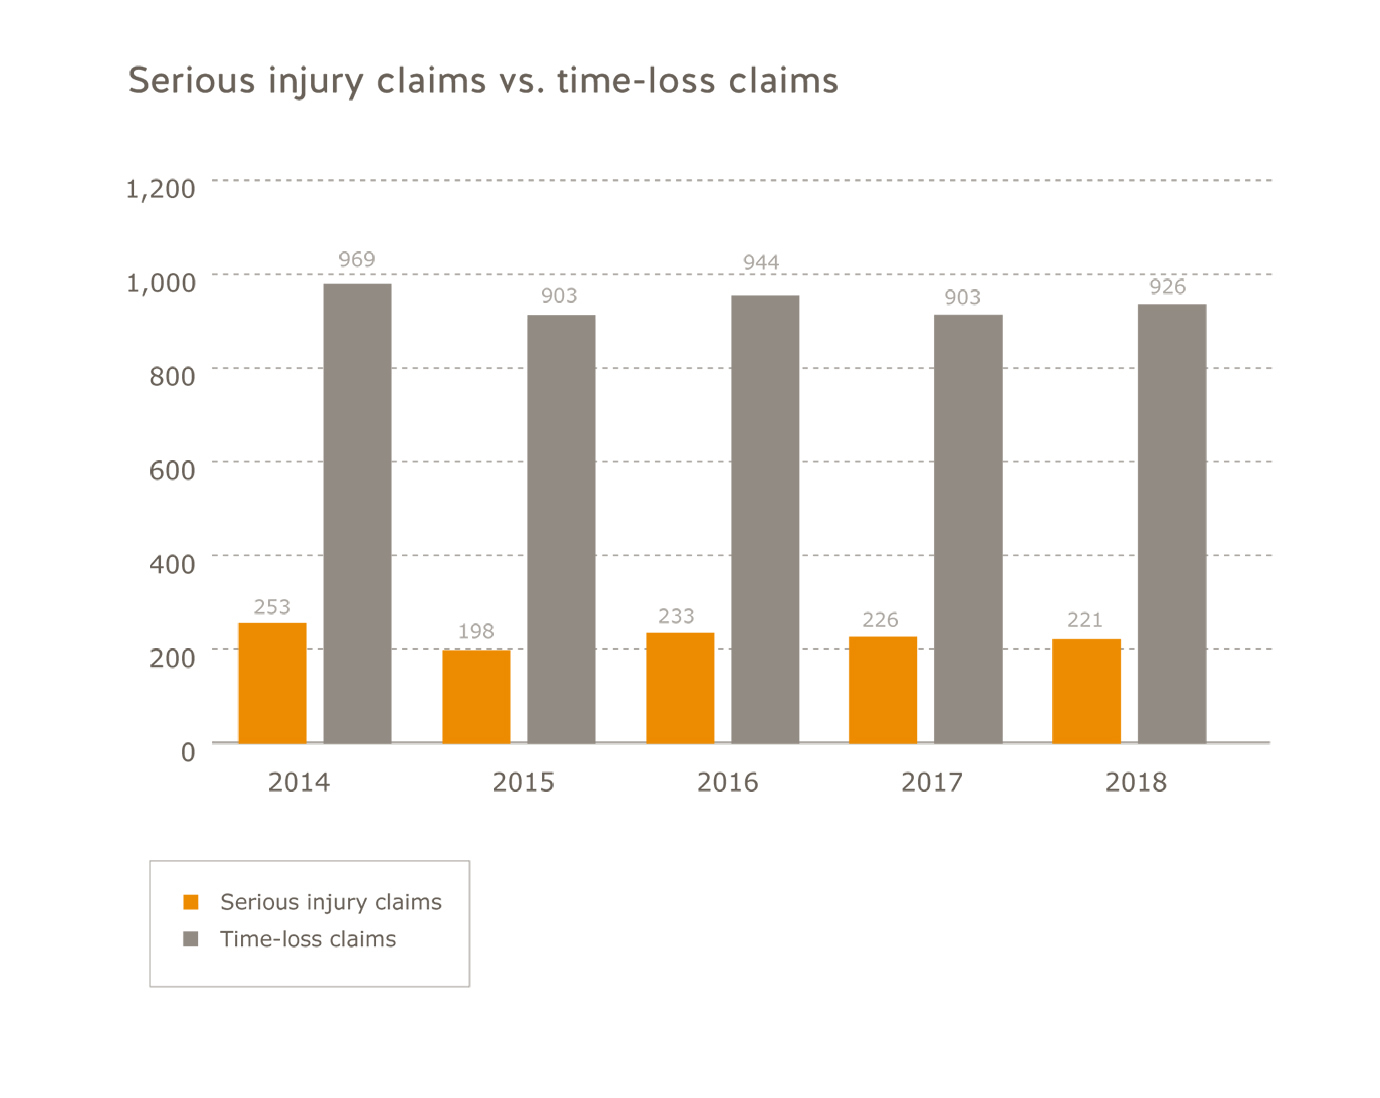 Forestry sector serious injury claims vs. time-loss claims for 2014 to 2018. Serious injury claims: 2014=253; 2015=198; 2016=233; 2017=226; 2018=221. Time-loss claims: 2014=969; 2015=903; 2016=944; 2017=903; 2018=926